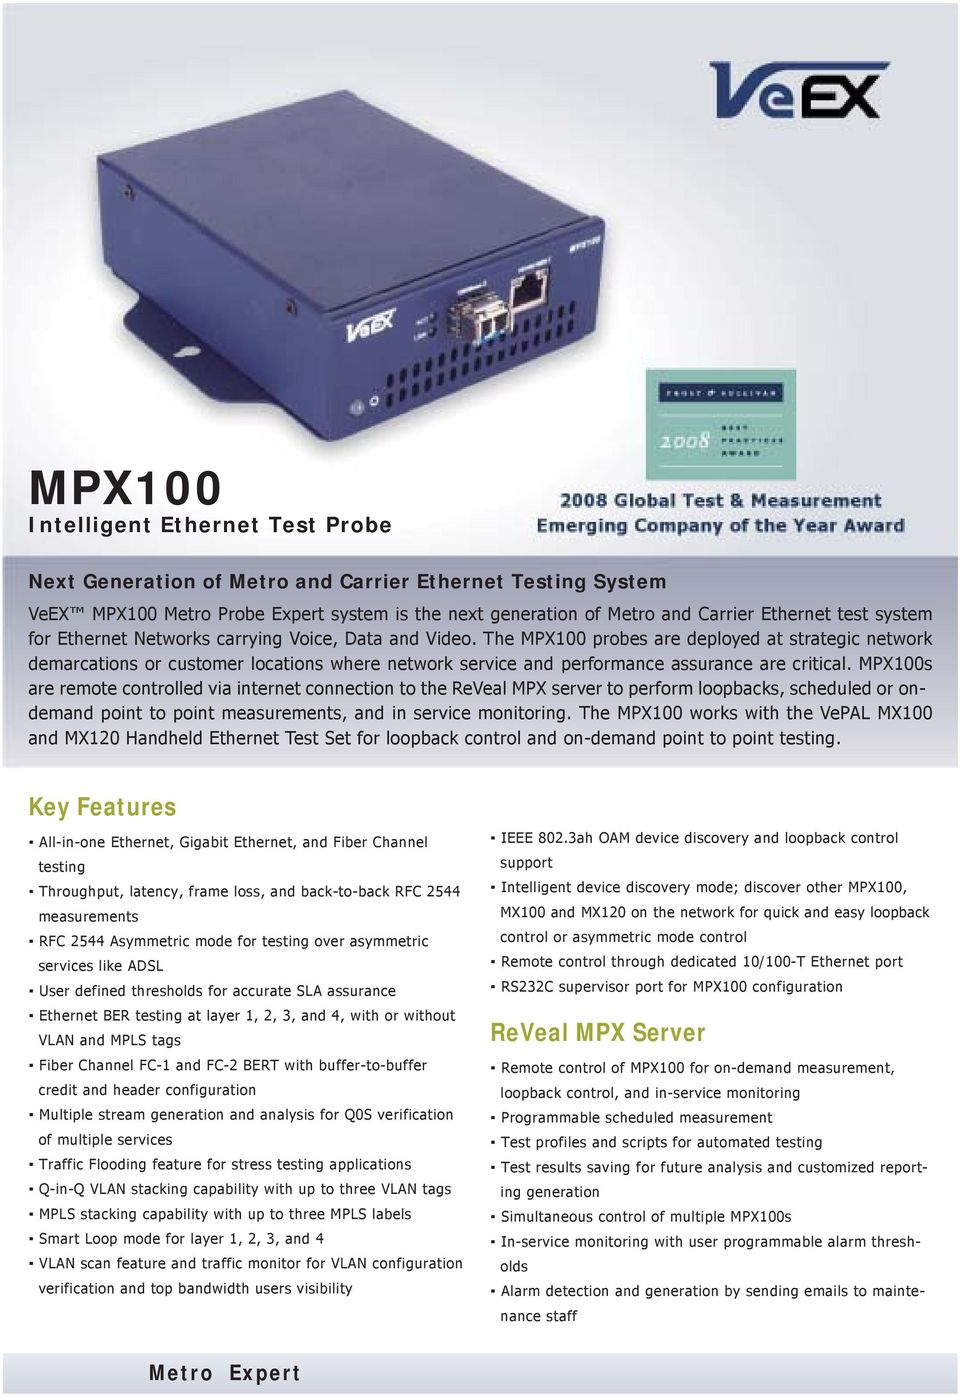 The MPX100 probes are deployed at strategic network demarcations or customer locations where network service and performance assurance are critical.